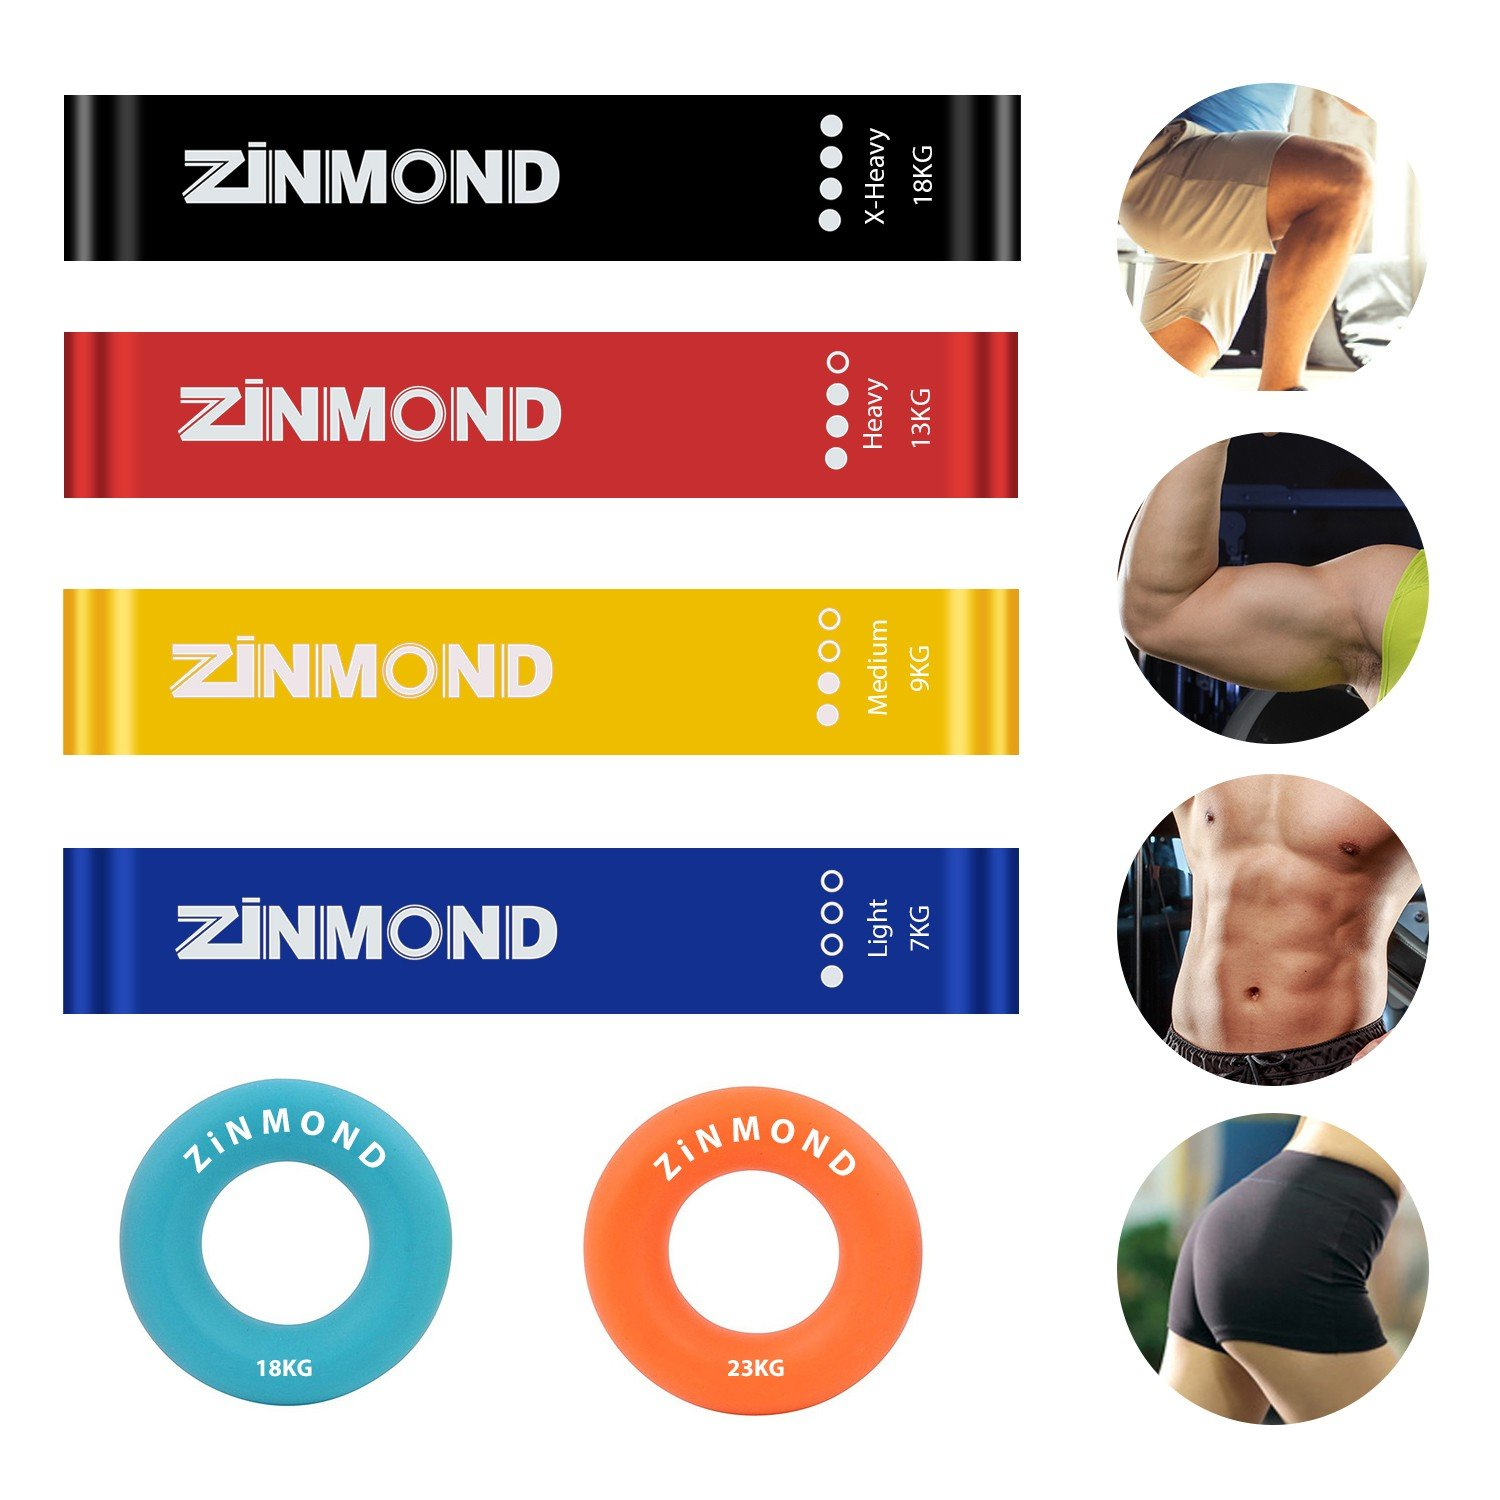 ZINMOND Exercise Bands, Resistance Bands Exercise Loops 4 Set with FREE 2 Set Hand Grip Strengthener, Workout Bands for Home Fitness, Stretching, Physical Therapy, Yoga, Fat Burning and More